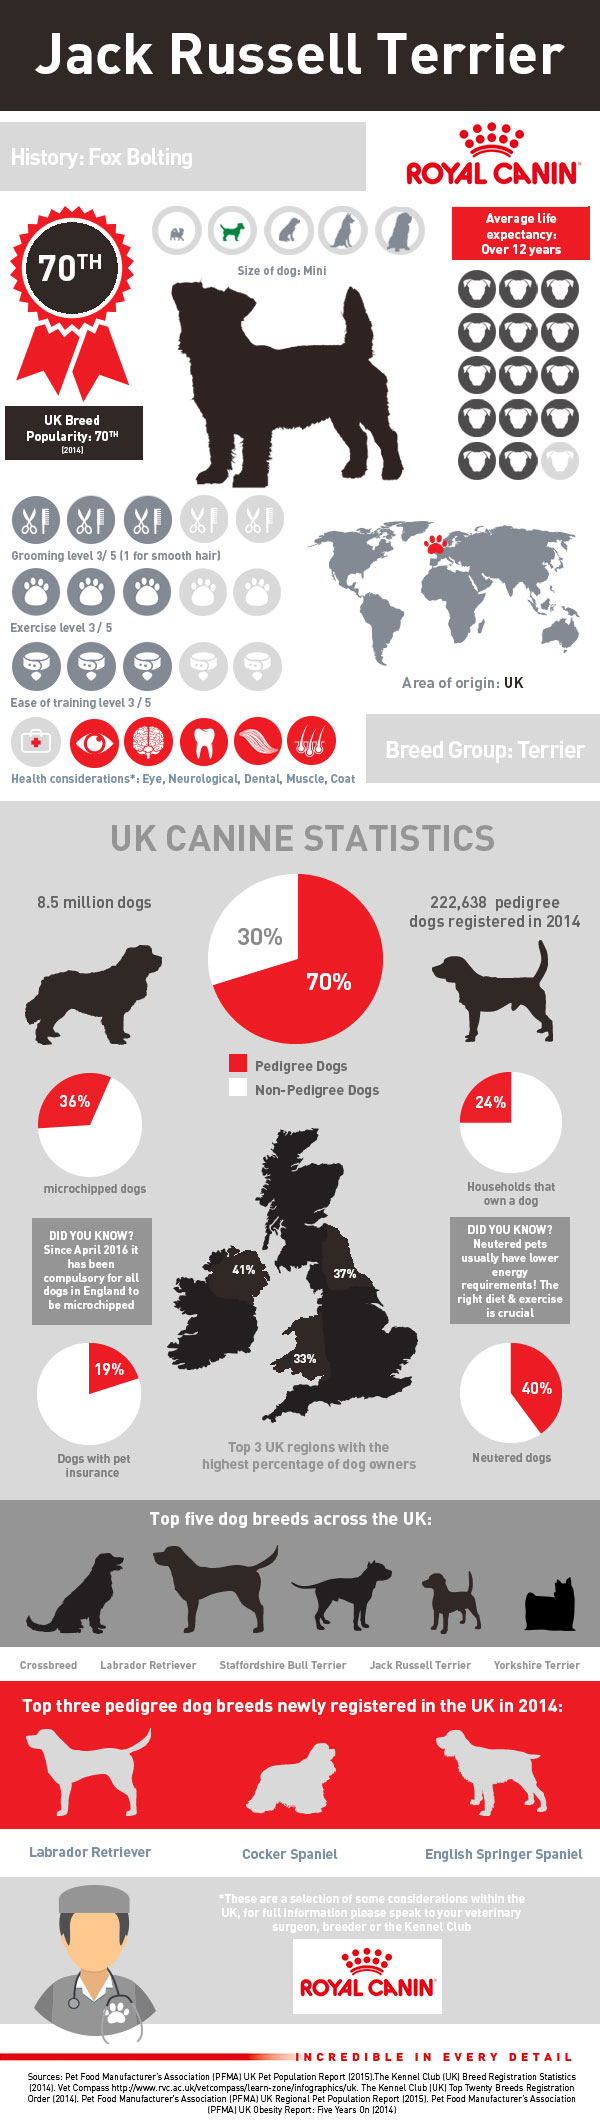 infographic-jack-russell-terrier